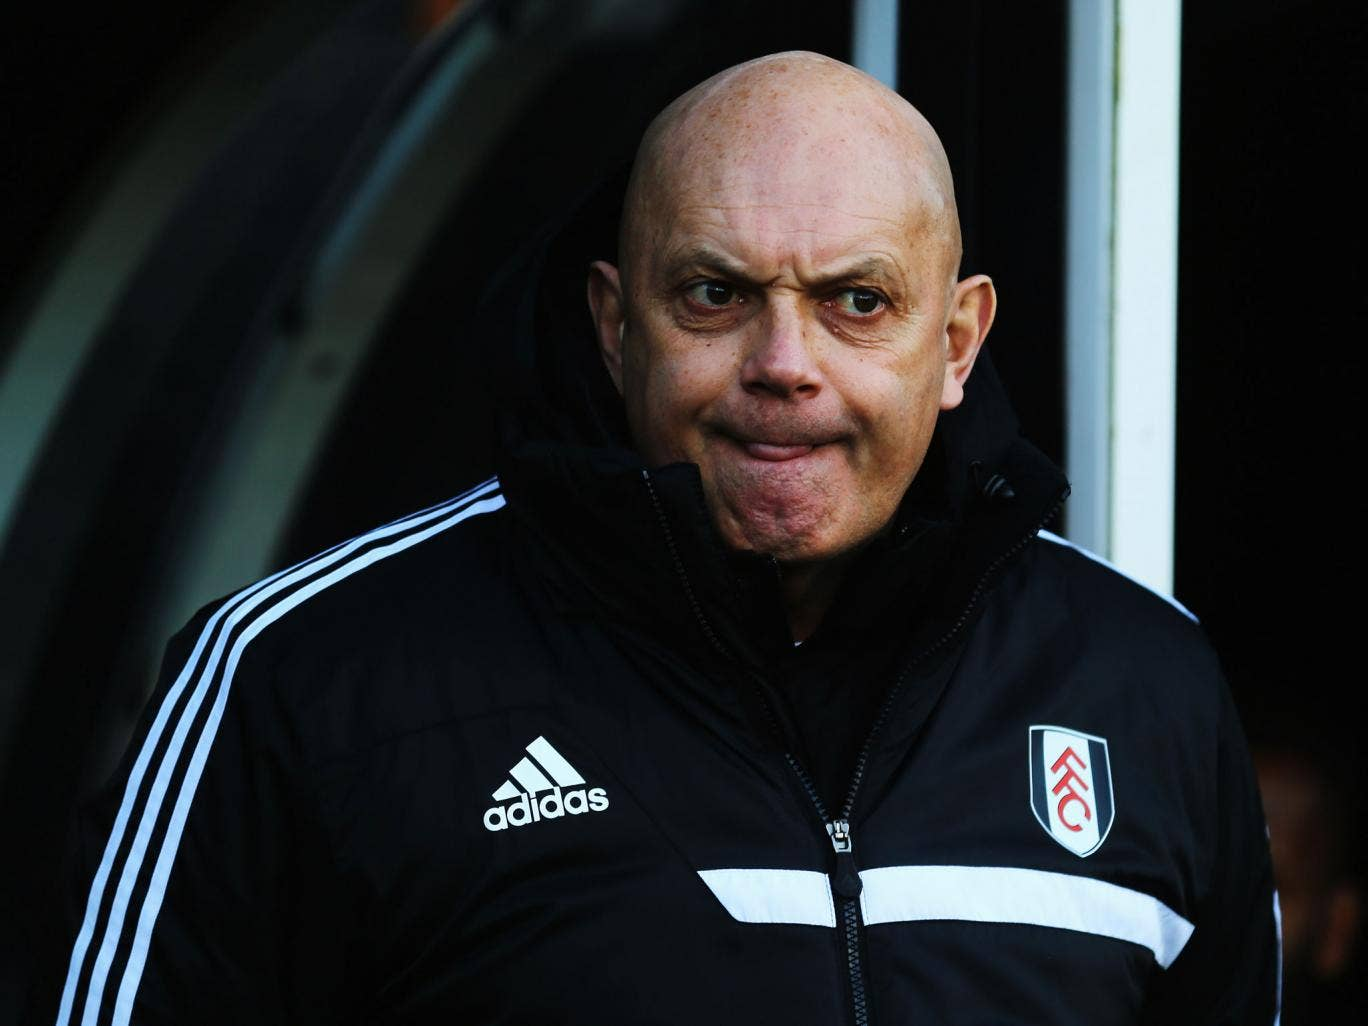 Ray Wilkins has revealed that he has battled depression since his playing days